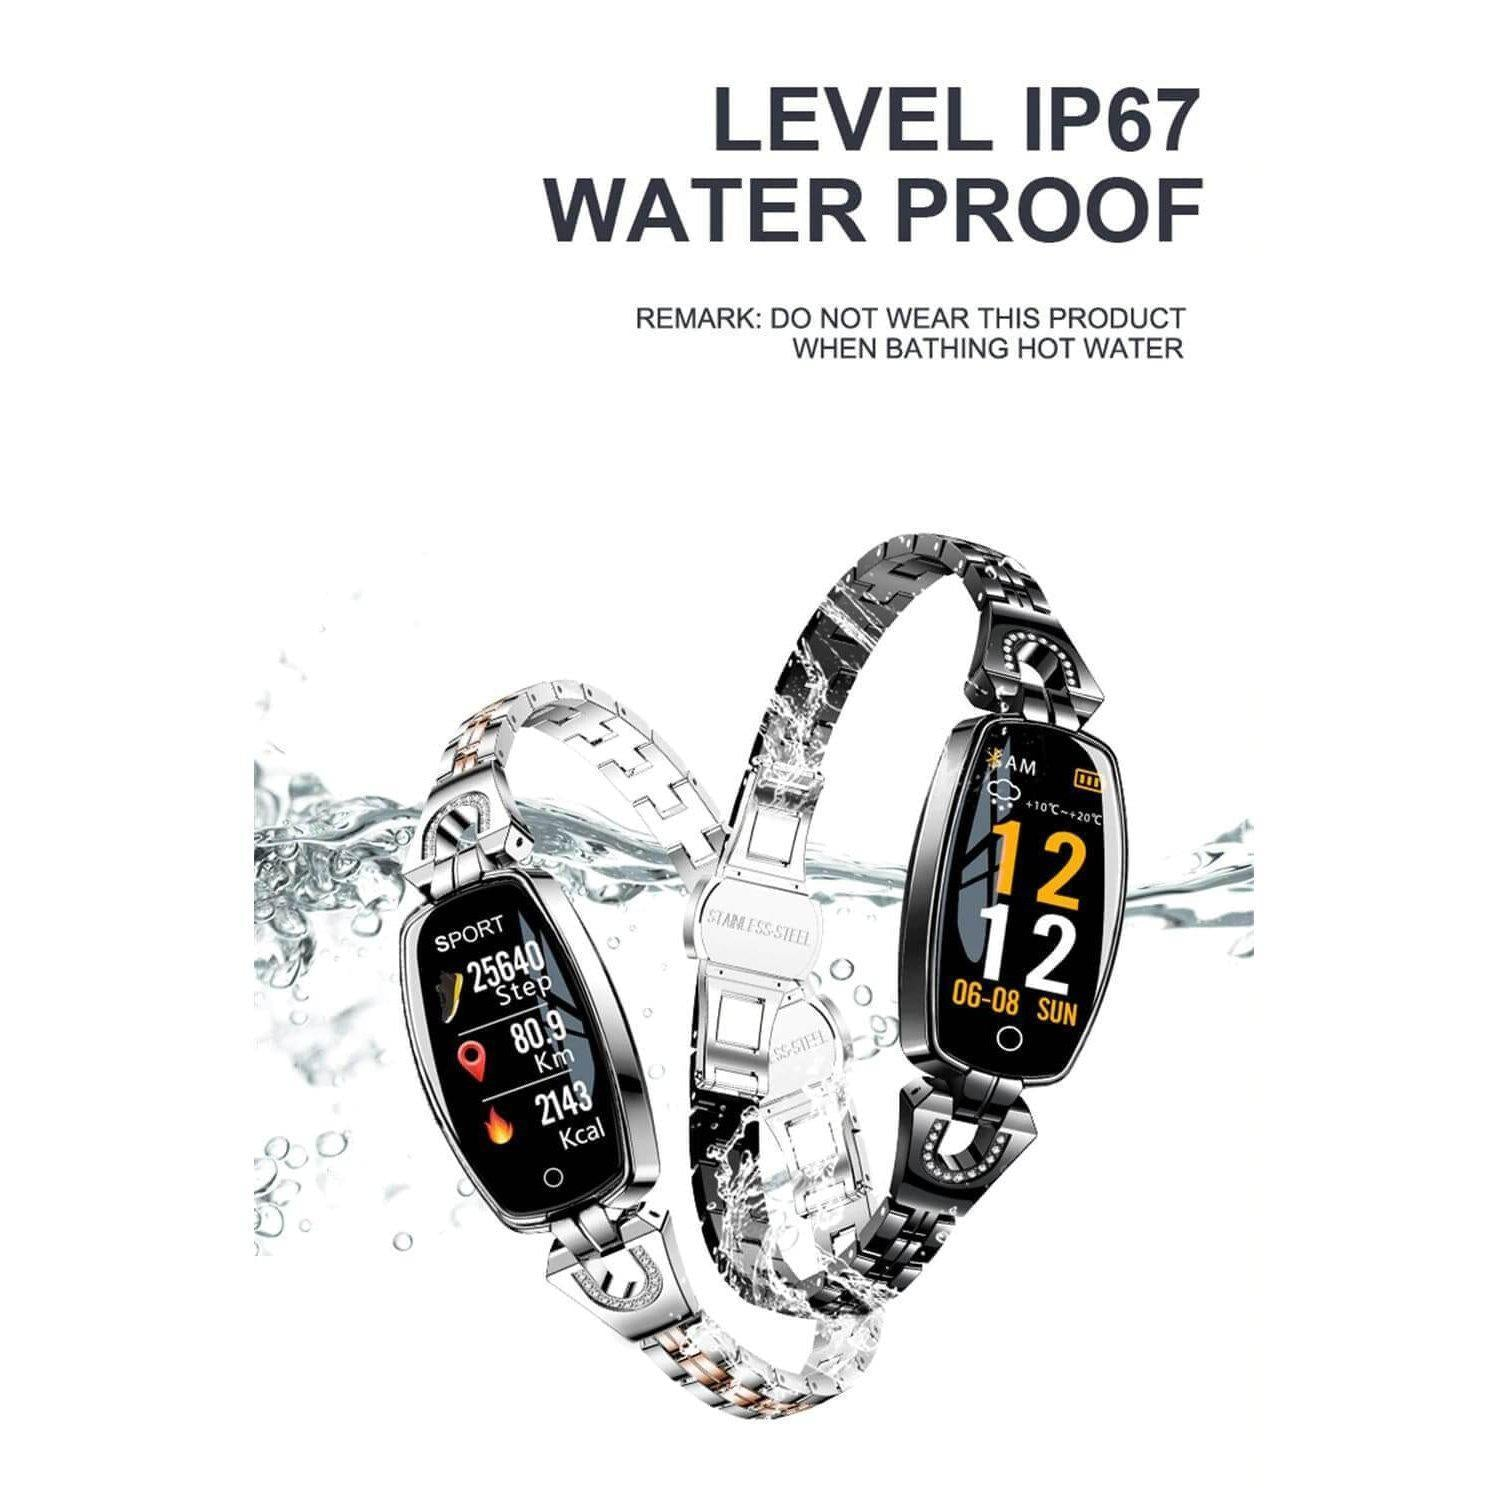 SmartWatch Women - Waterproof Fitness Tracker for both Android & IOS - Best Smart Fitness Watch For Womens - Premium Smart Fitness Tracker - Compatible with Android & IOS -Set of Silver & Black - Save $20 - Shopptique